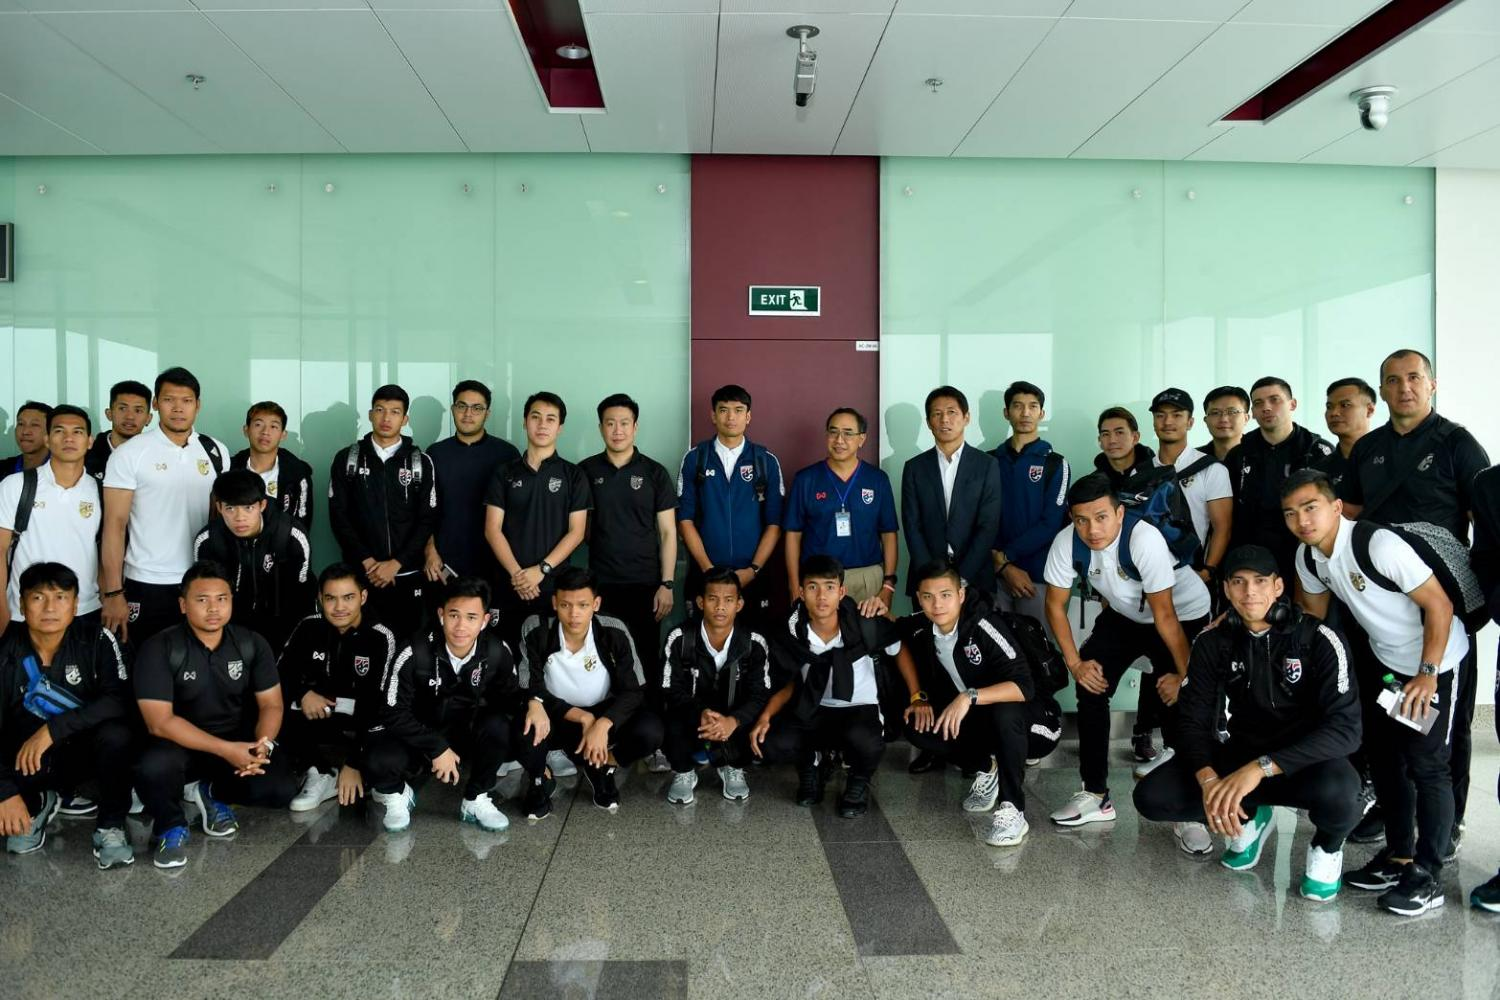 Thailand national team upon their arrival at the Hanoi airport on Saturday.